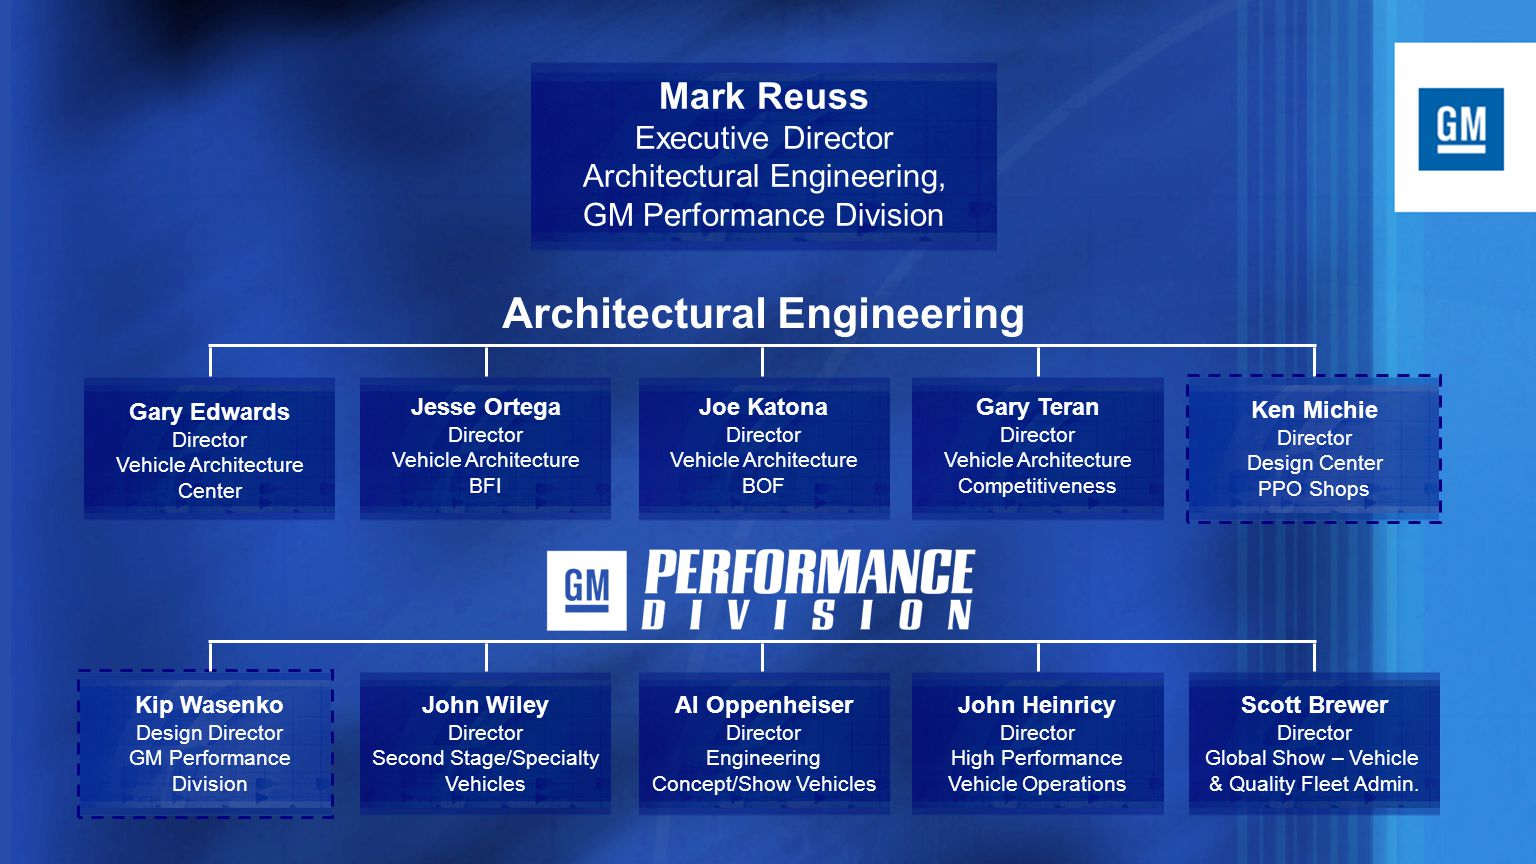 Mark Reuss Executive Director Architectural Engineering, GM Performance Division Gary Edwards Director Vehicle Architecture Center Jesse Ortega Director Vehicle Architecture BFI Joe Katona Director Vehicle Architecture BOF Gary Teran Director Vehicle Architecture Competitiveness Ken Michie Director Design Center PPO Shops John Wiley Director Second Stage/Specialty Vehicles Al Oppenheiser Director Engineering Concept/Show Vehicles John Heinricy Director High Performance Vehicle Operations Kip Wasenko Design Director GM Performance Division Scott Brewer Director Global Show – Vehicle & Quality Fleet Admin.